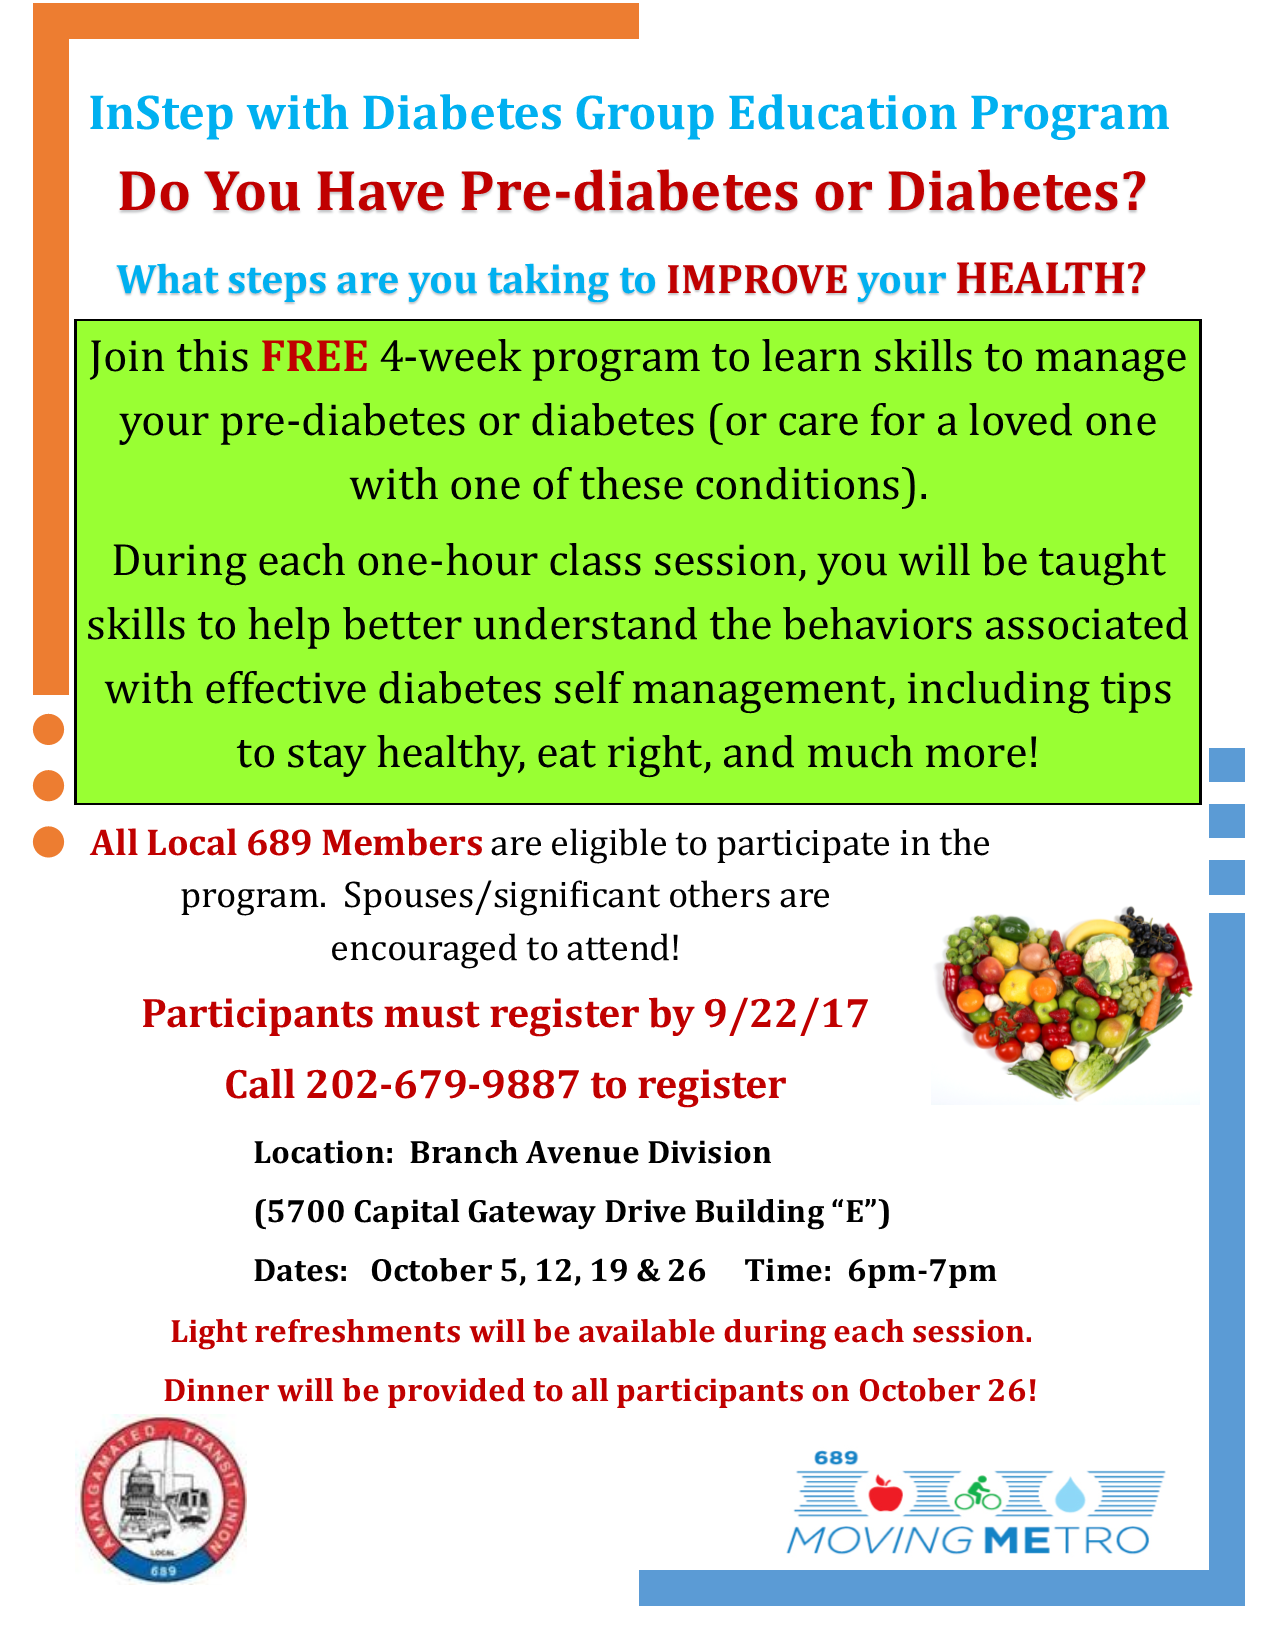 InStep with Diabetes Education Program Starting October!